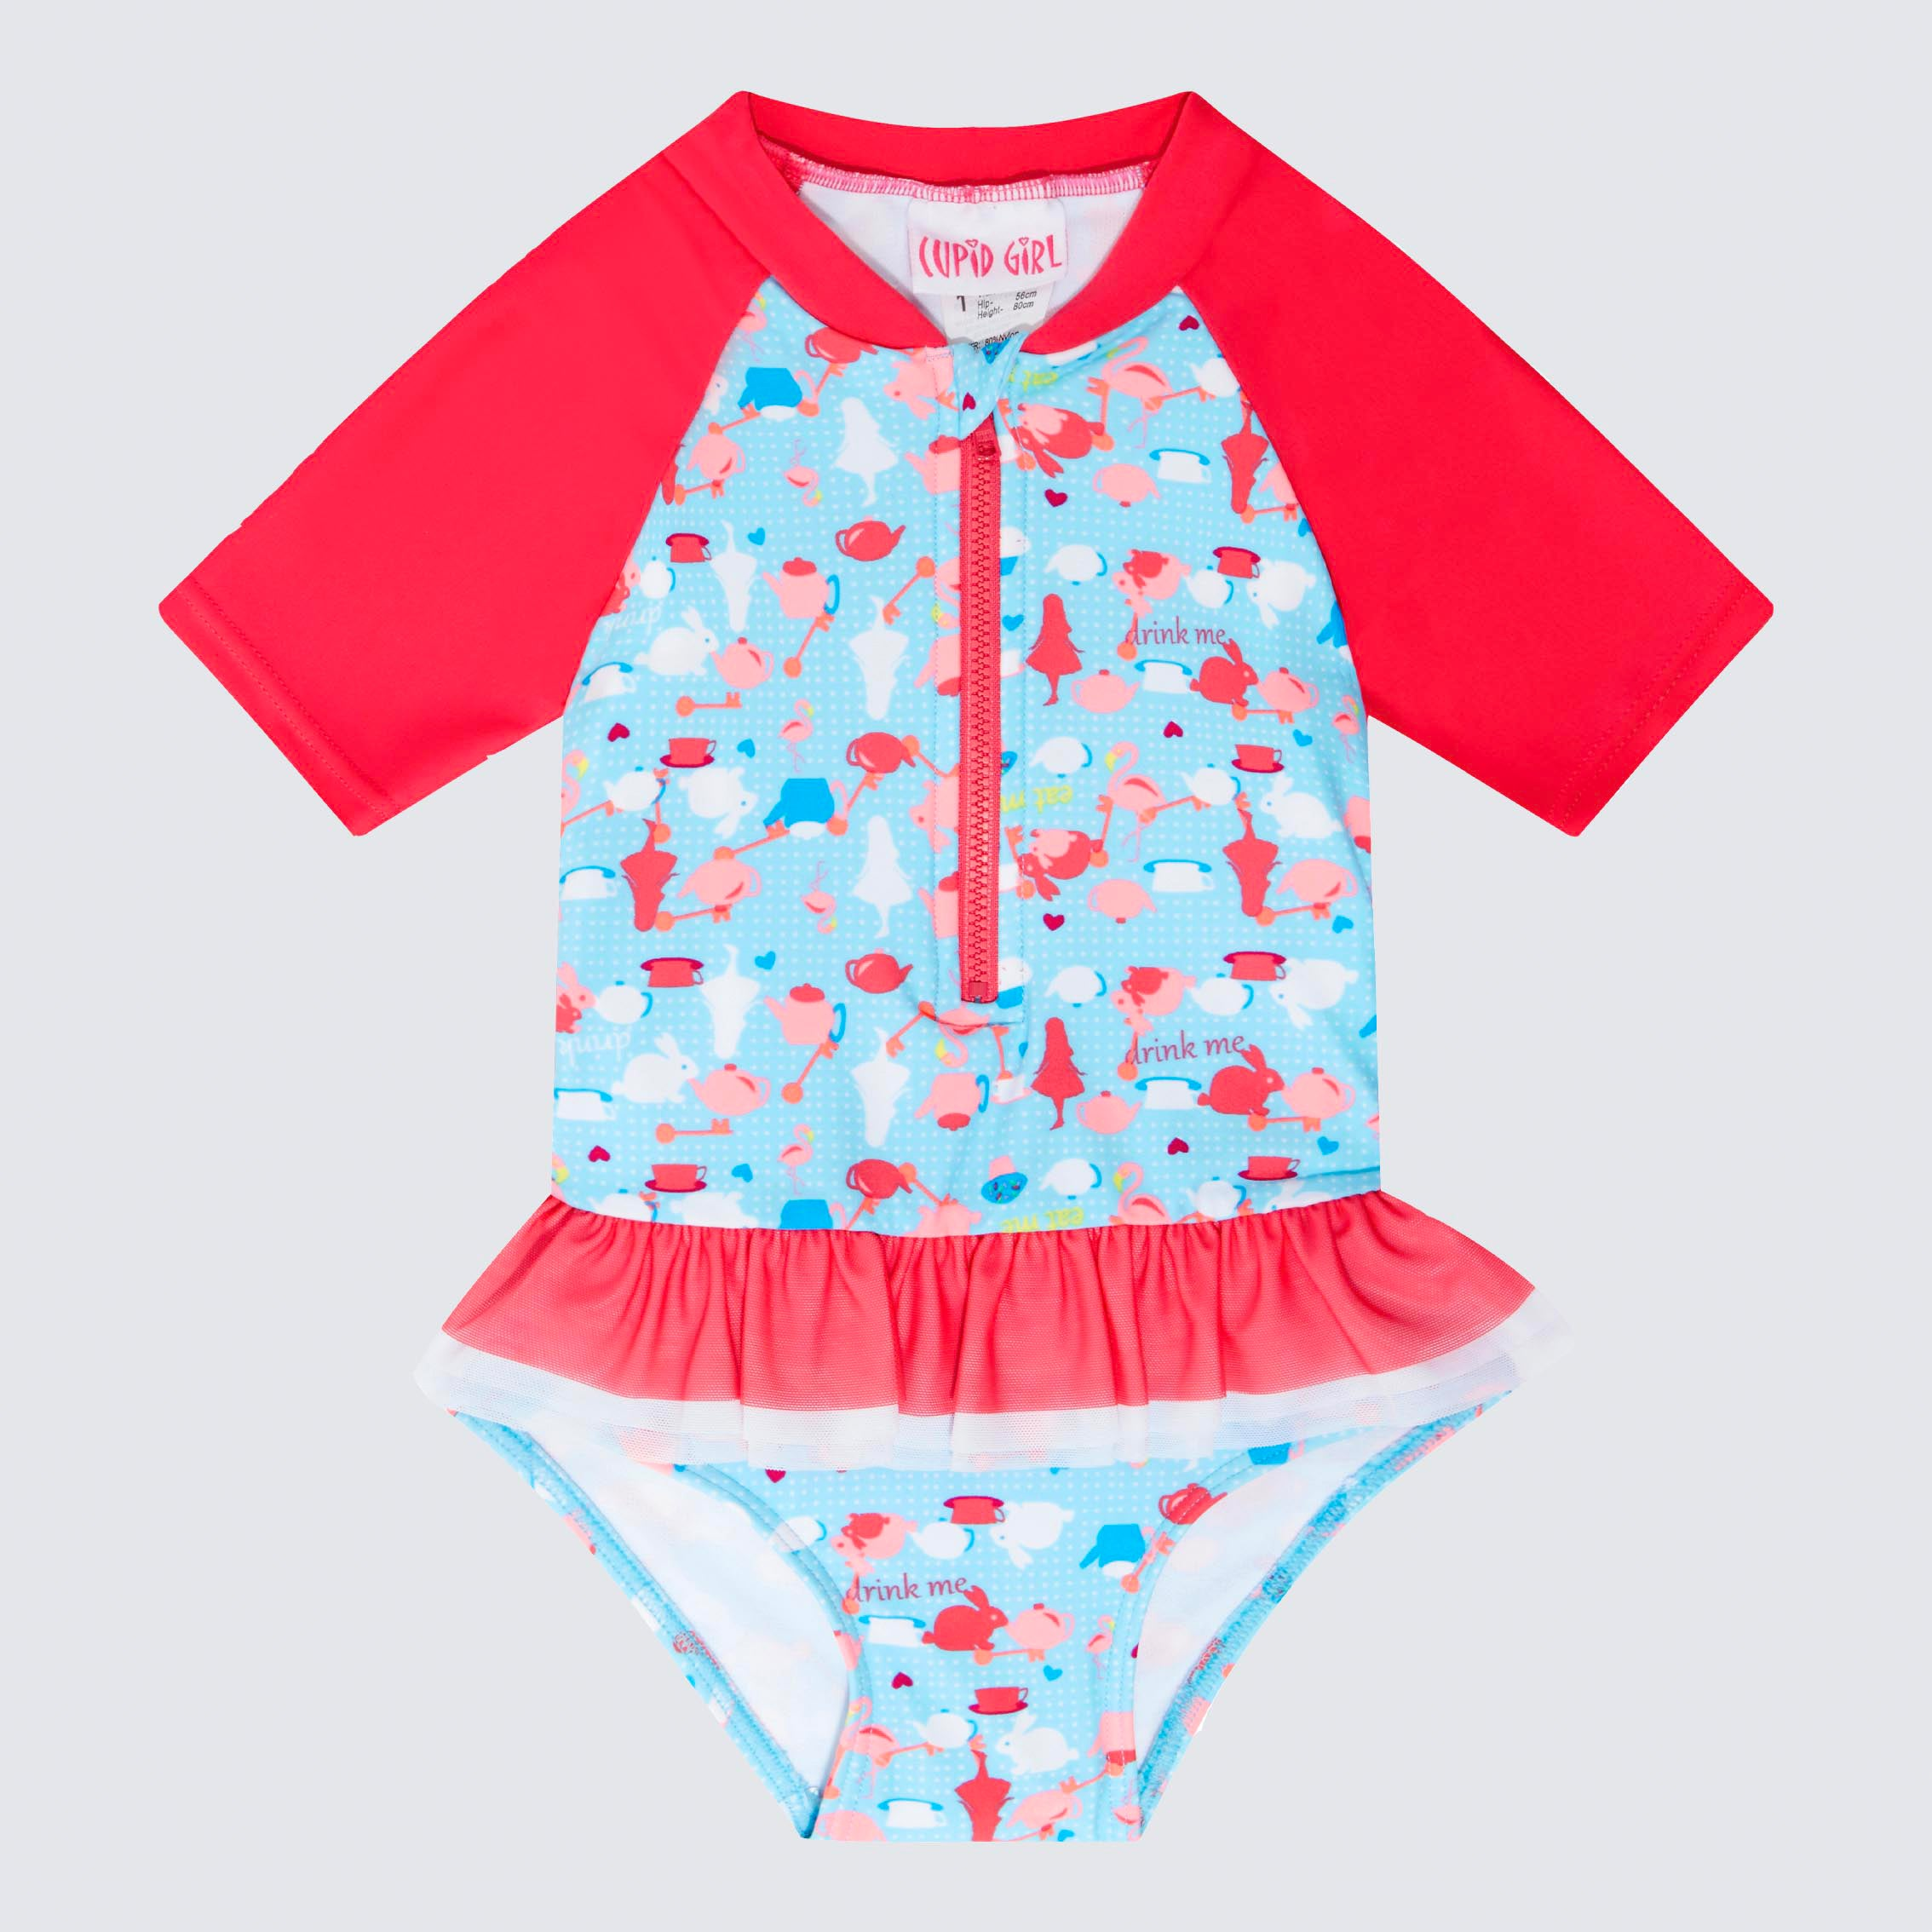 Cupid Girl Tea Party Tutu One Piece